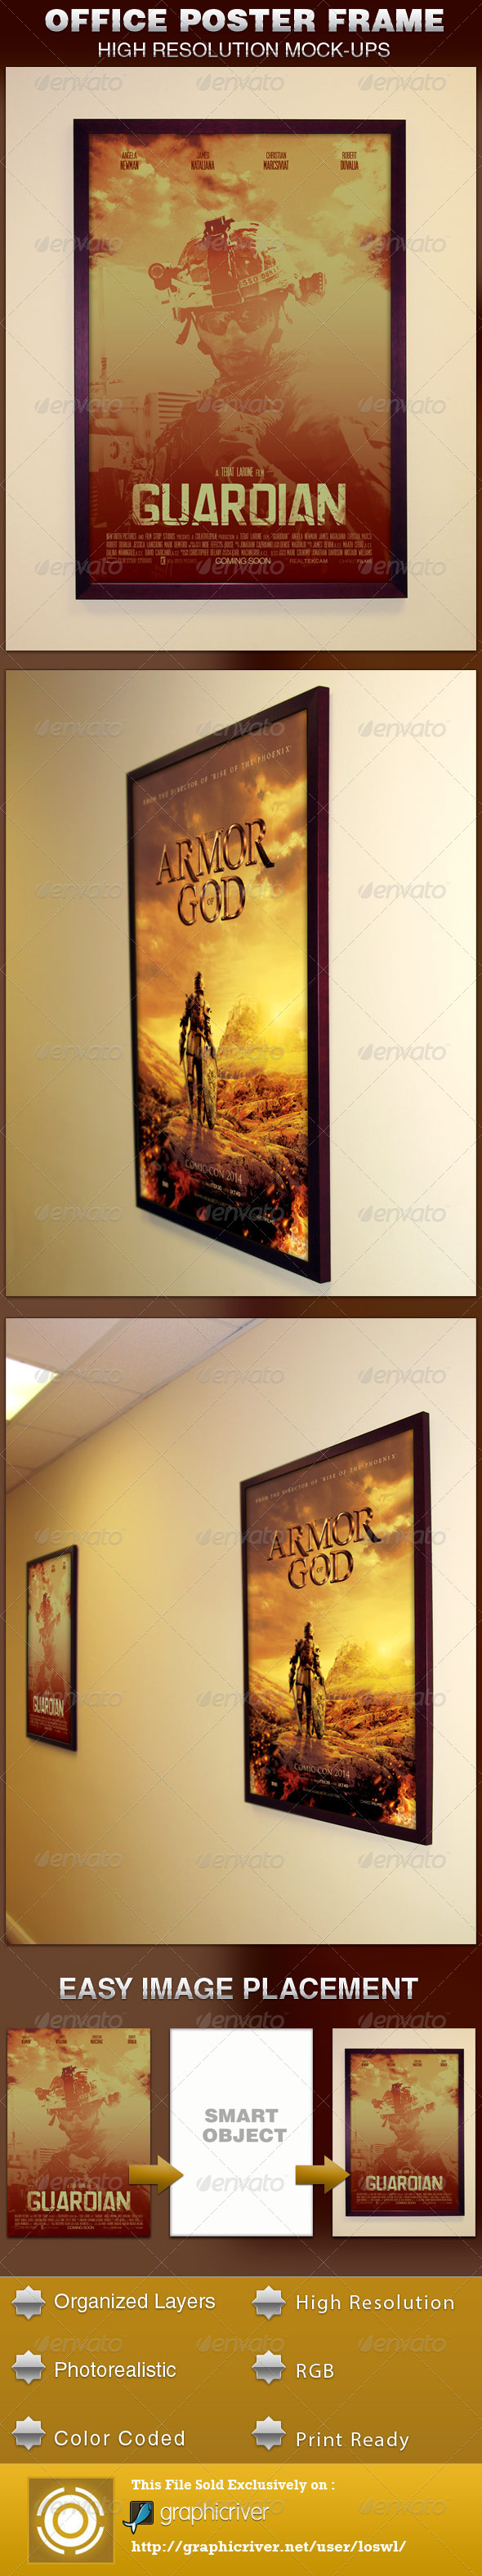 office frame poster mockup template armors armor of god and squares office frame poster mockup template is exclusively on graphicriver it can be used for your posters flyers etc